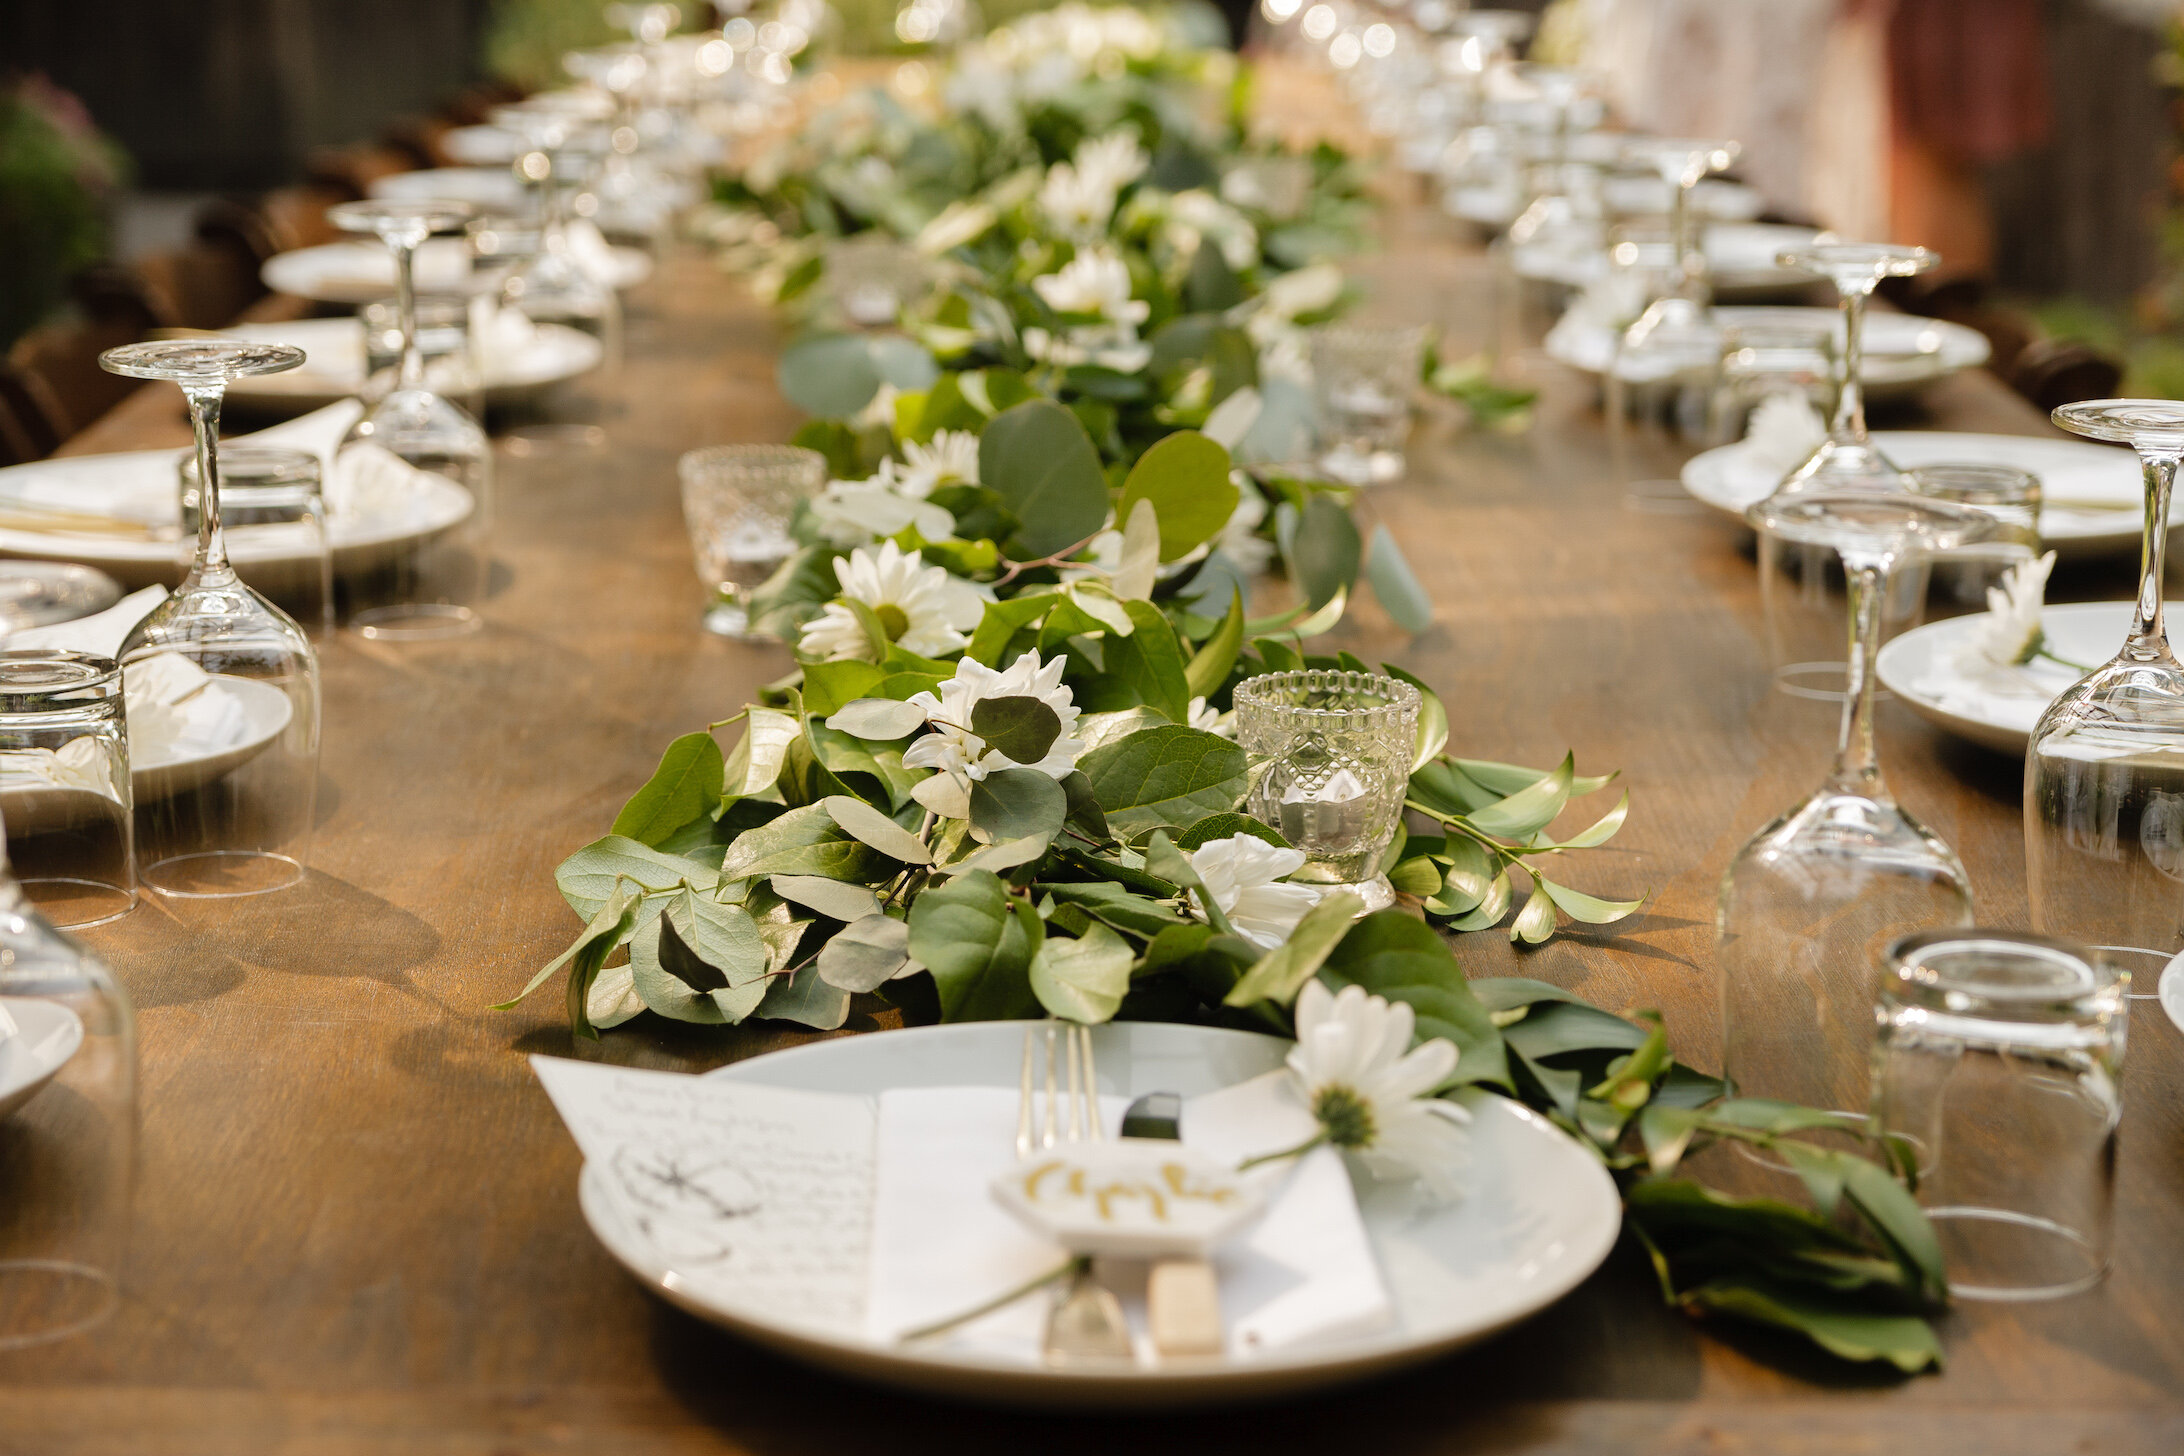 plates and flowers on wedding table.jpg